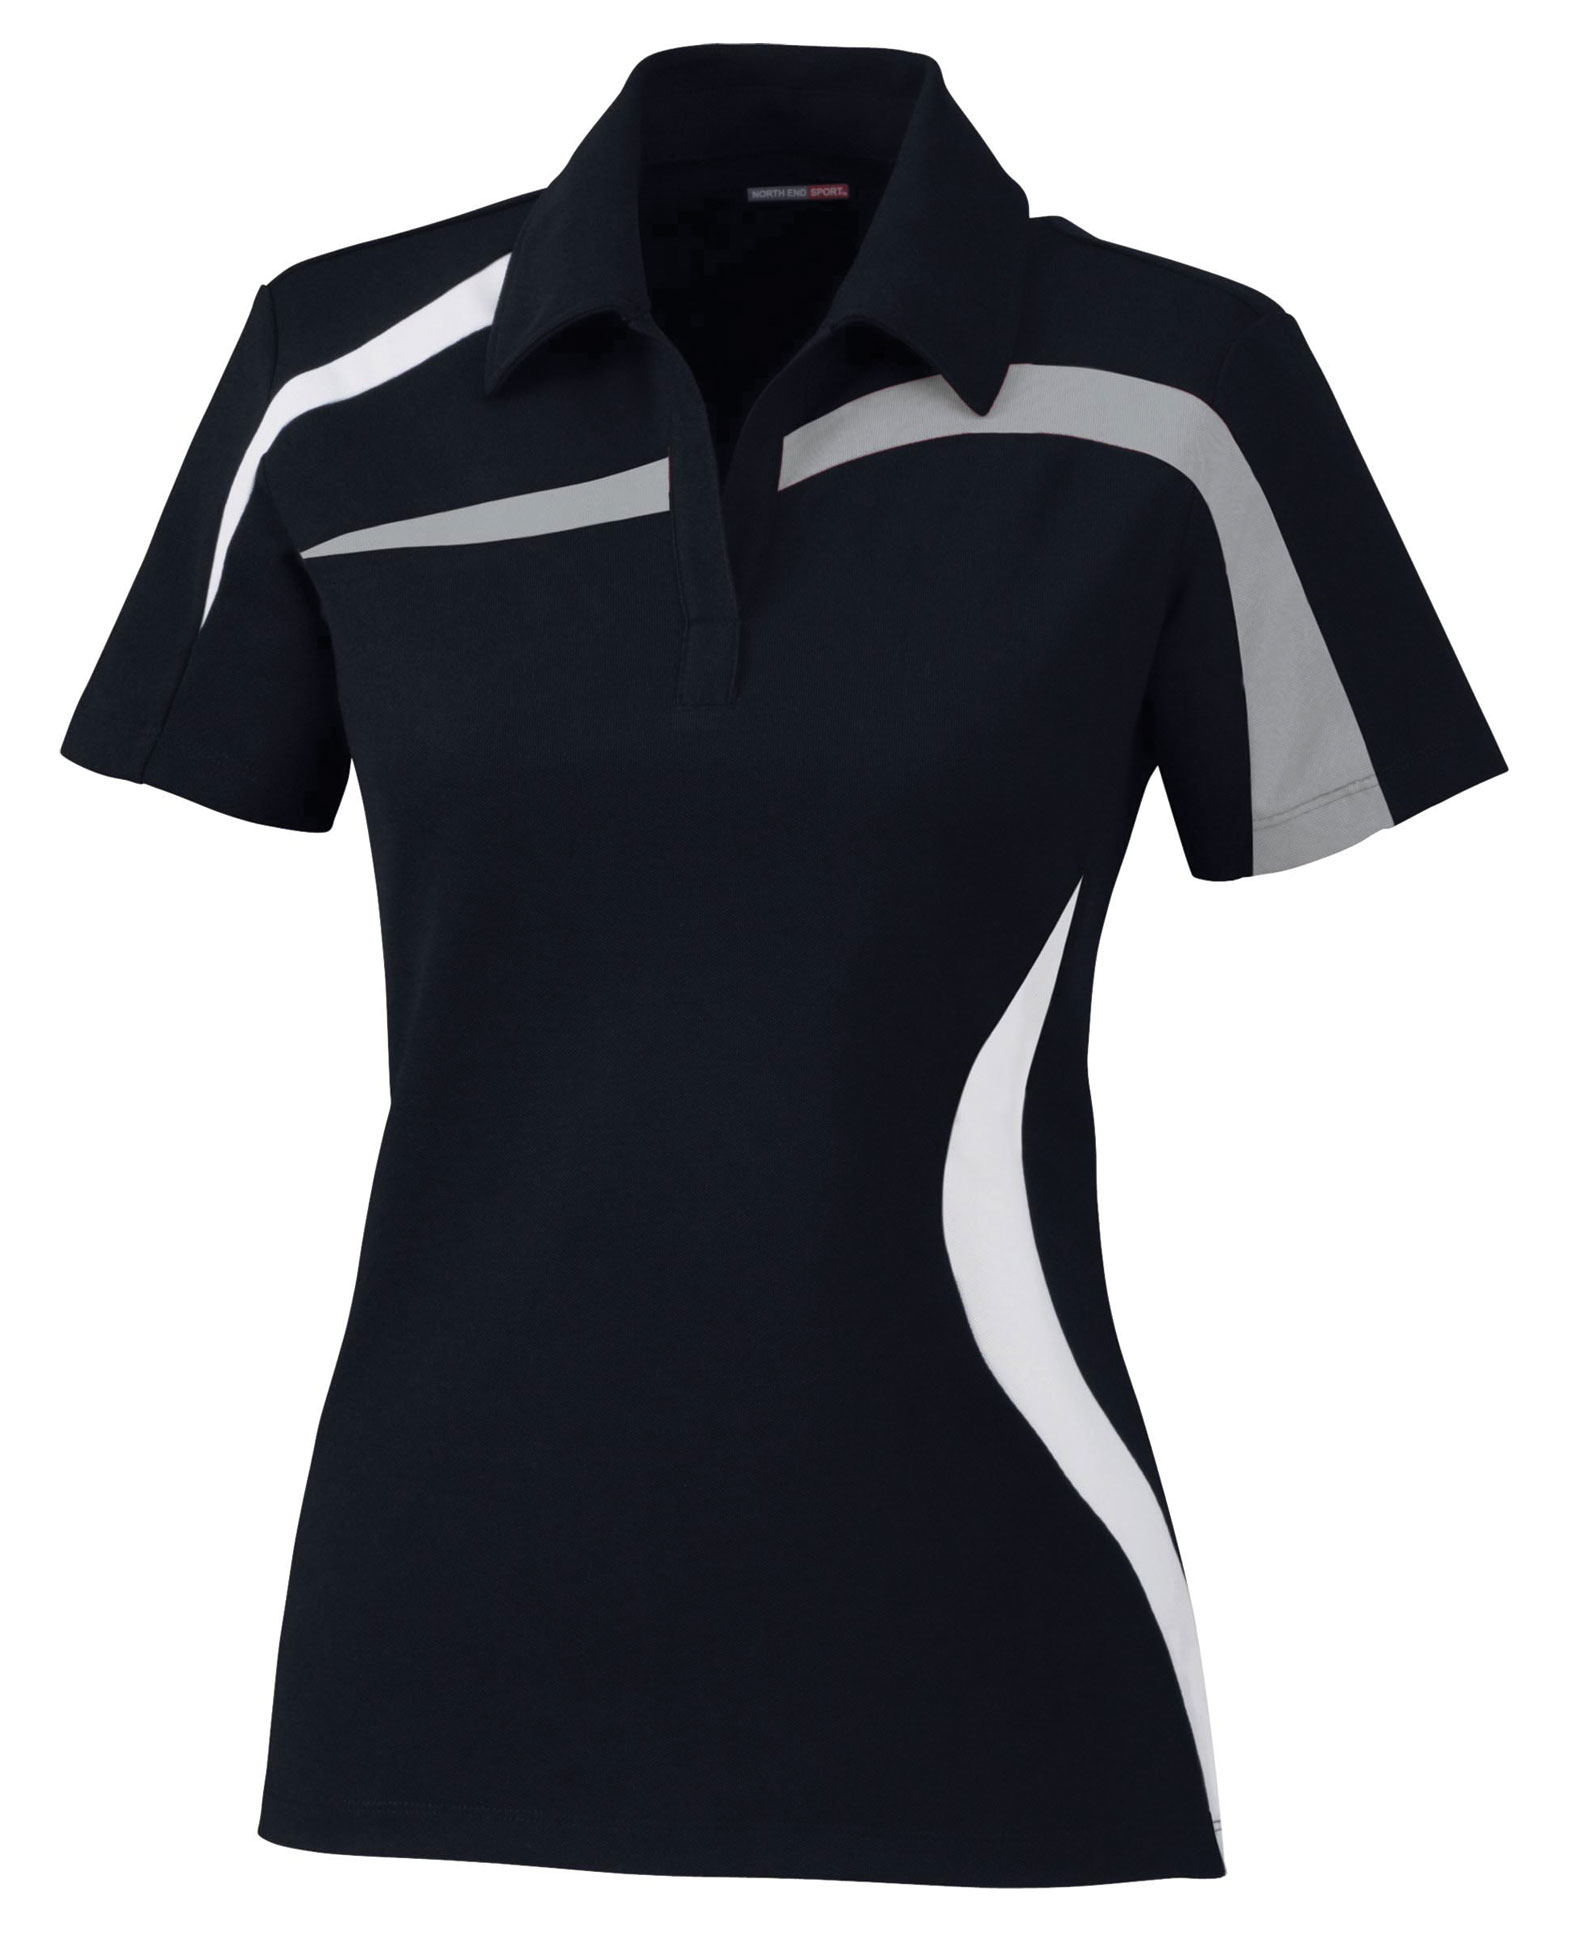 Ladies Performance Polyester Pique Color-Blocked Polo